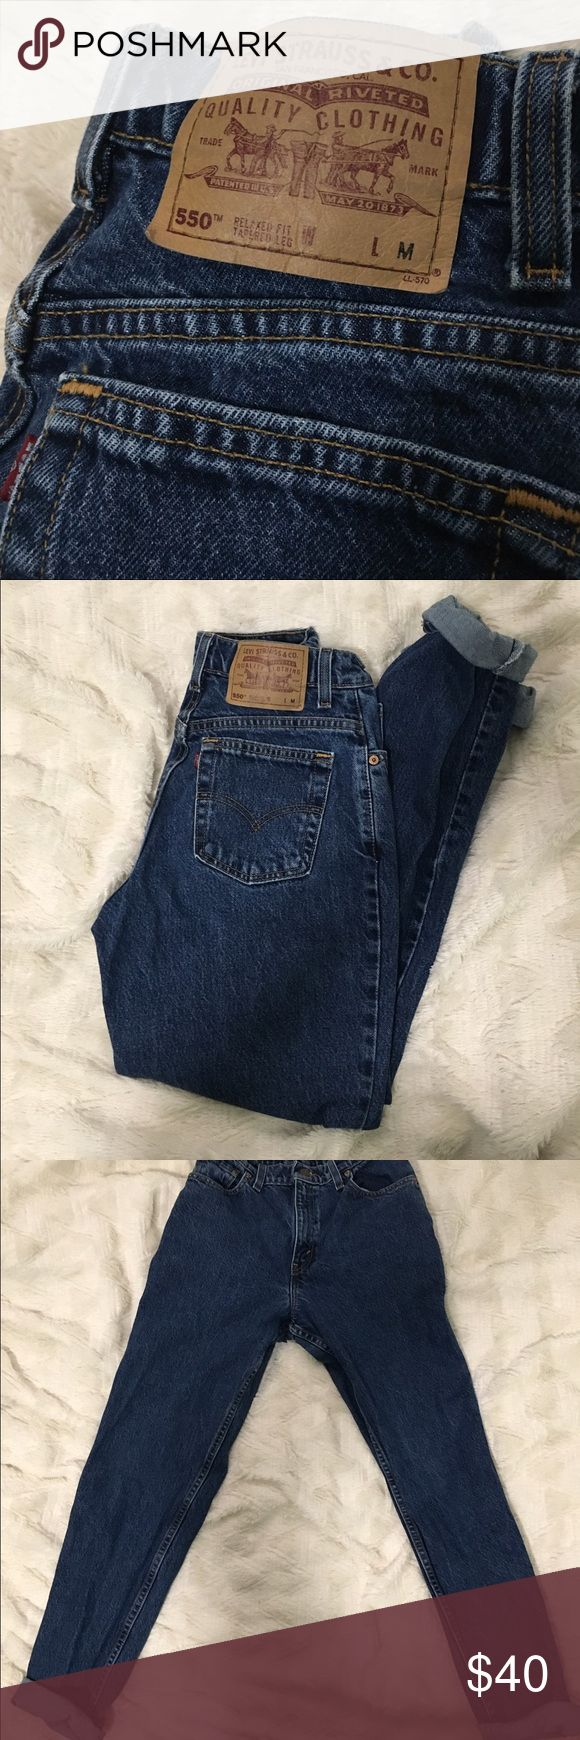 Levi mom jeans Levi 550 mom jeans. Relaxed fit, tapered leg. Levi's Jeans